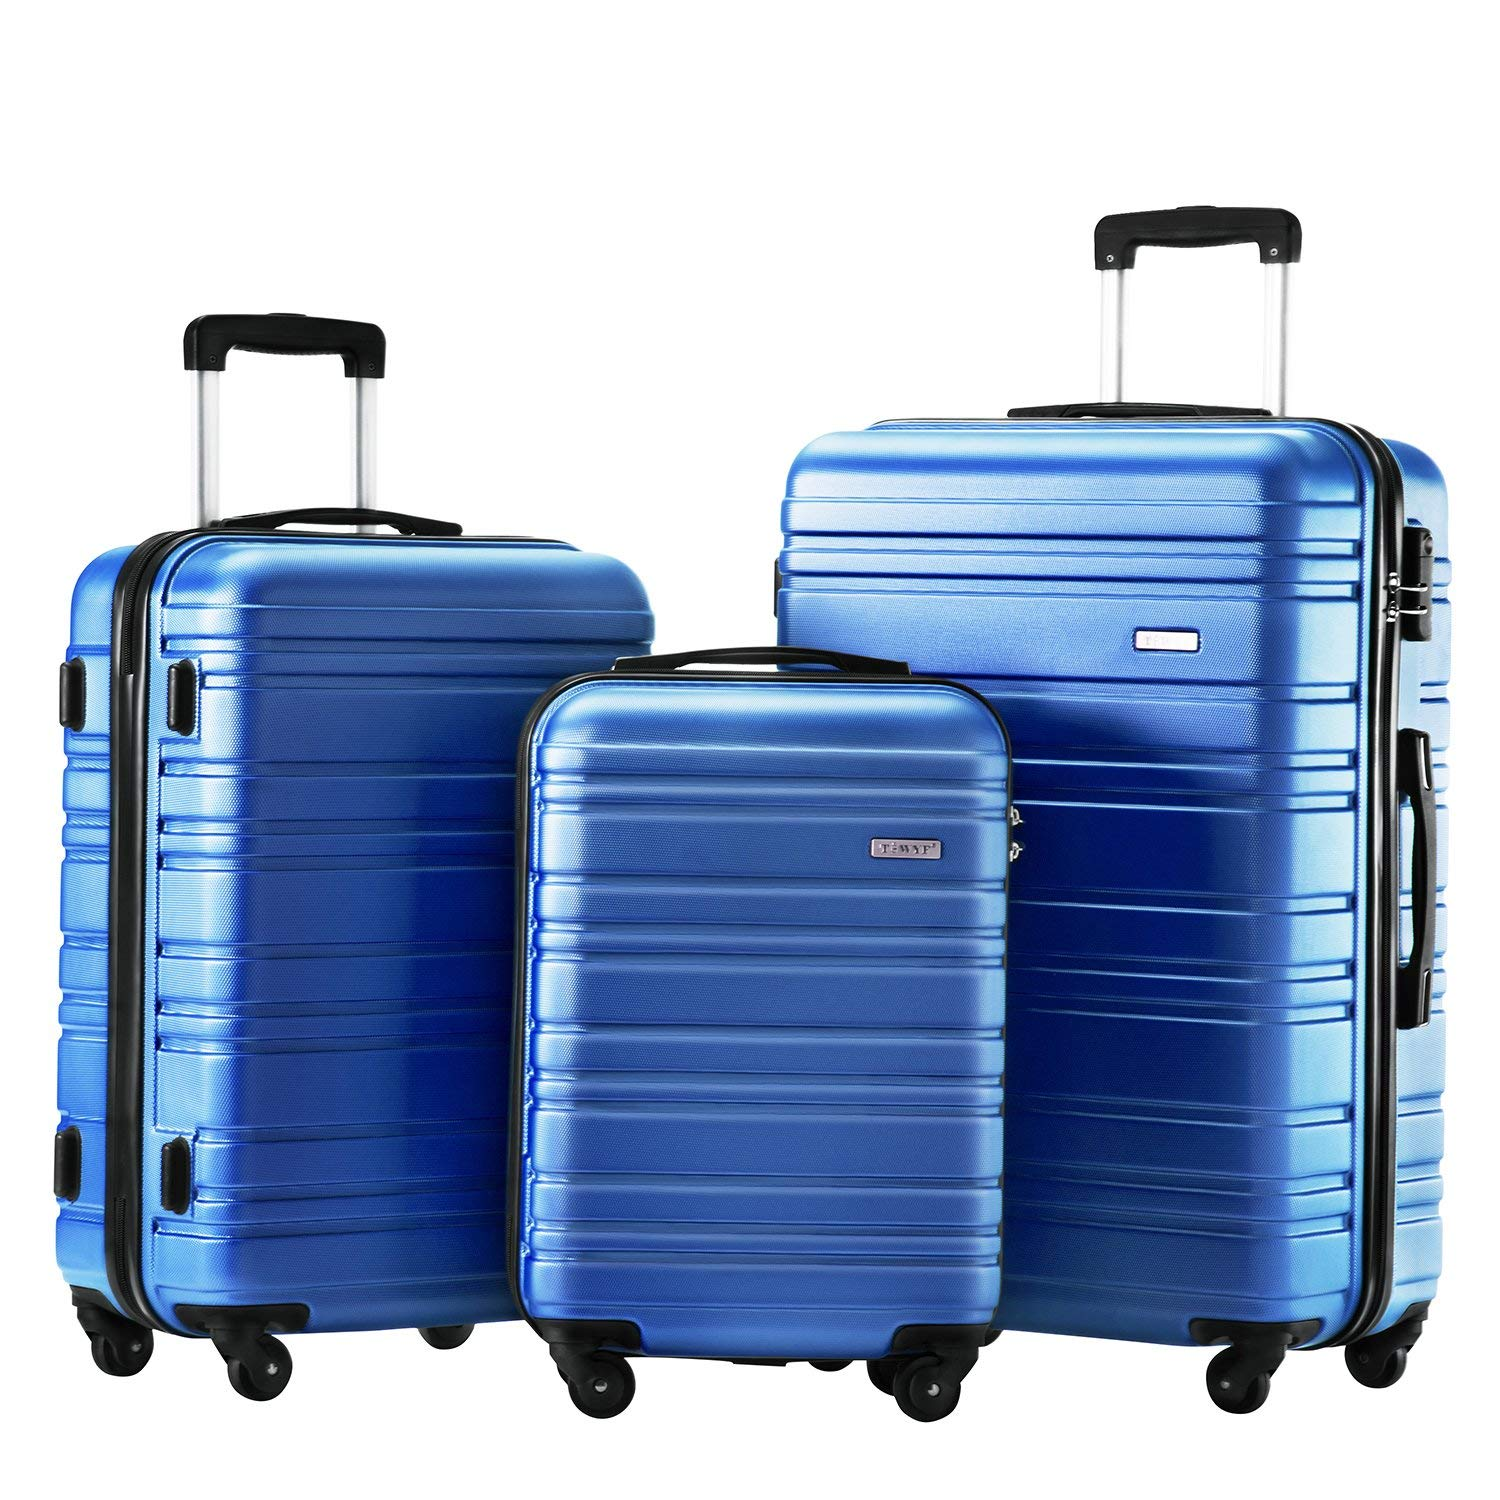 TBWYF 3 Piece Luggage Set